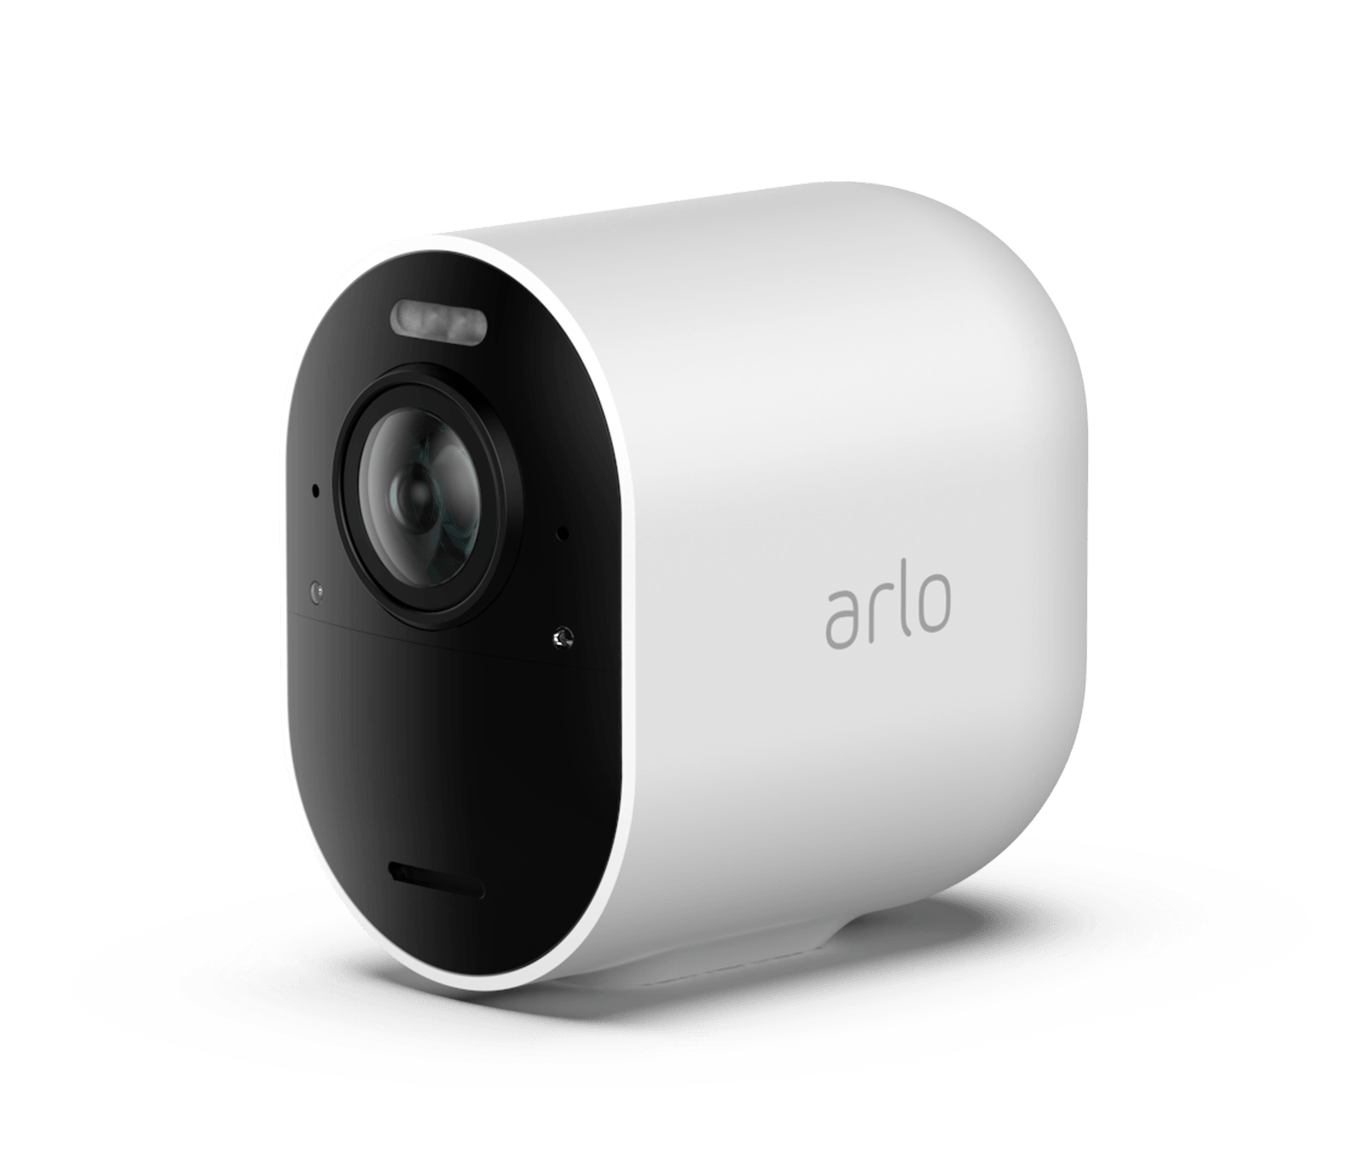 Image for ARLO CAMERA